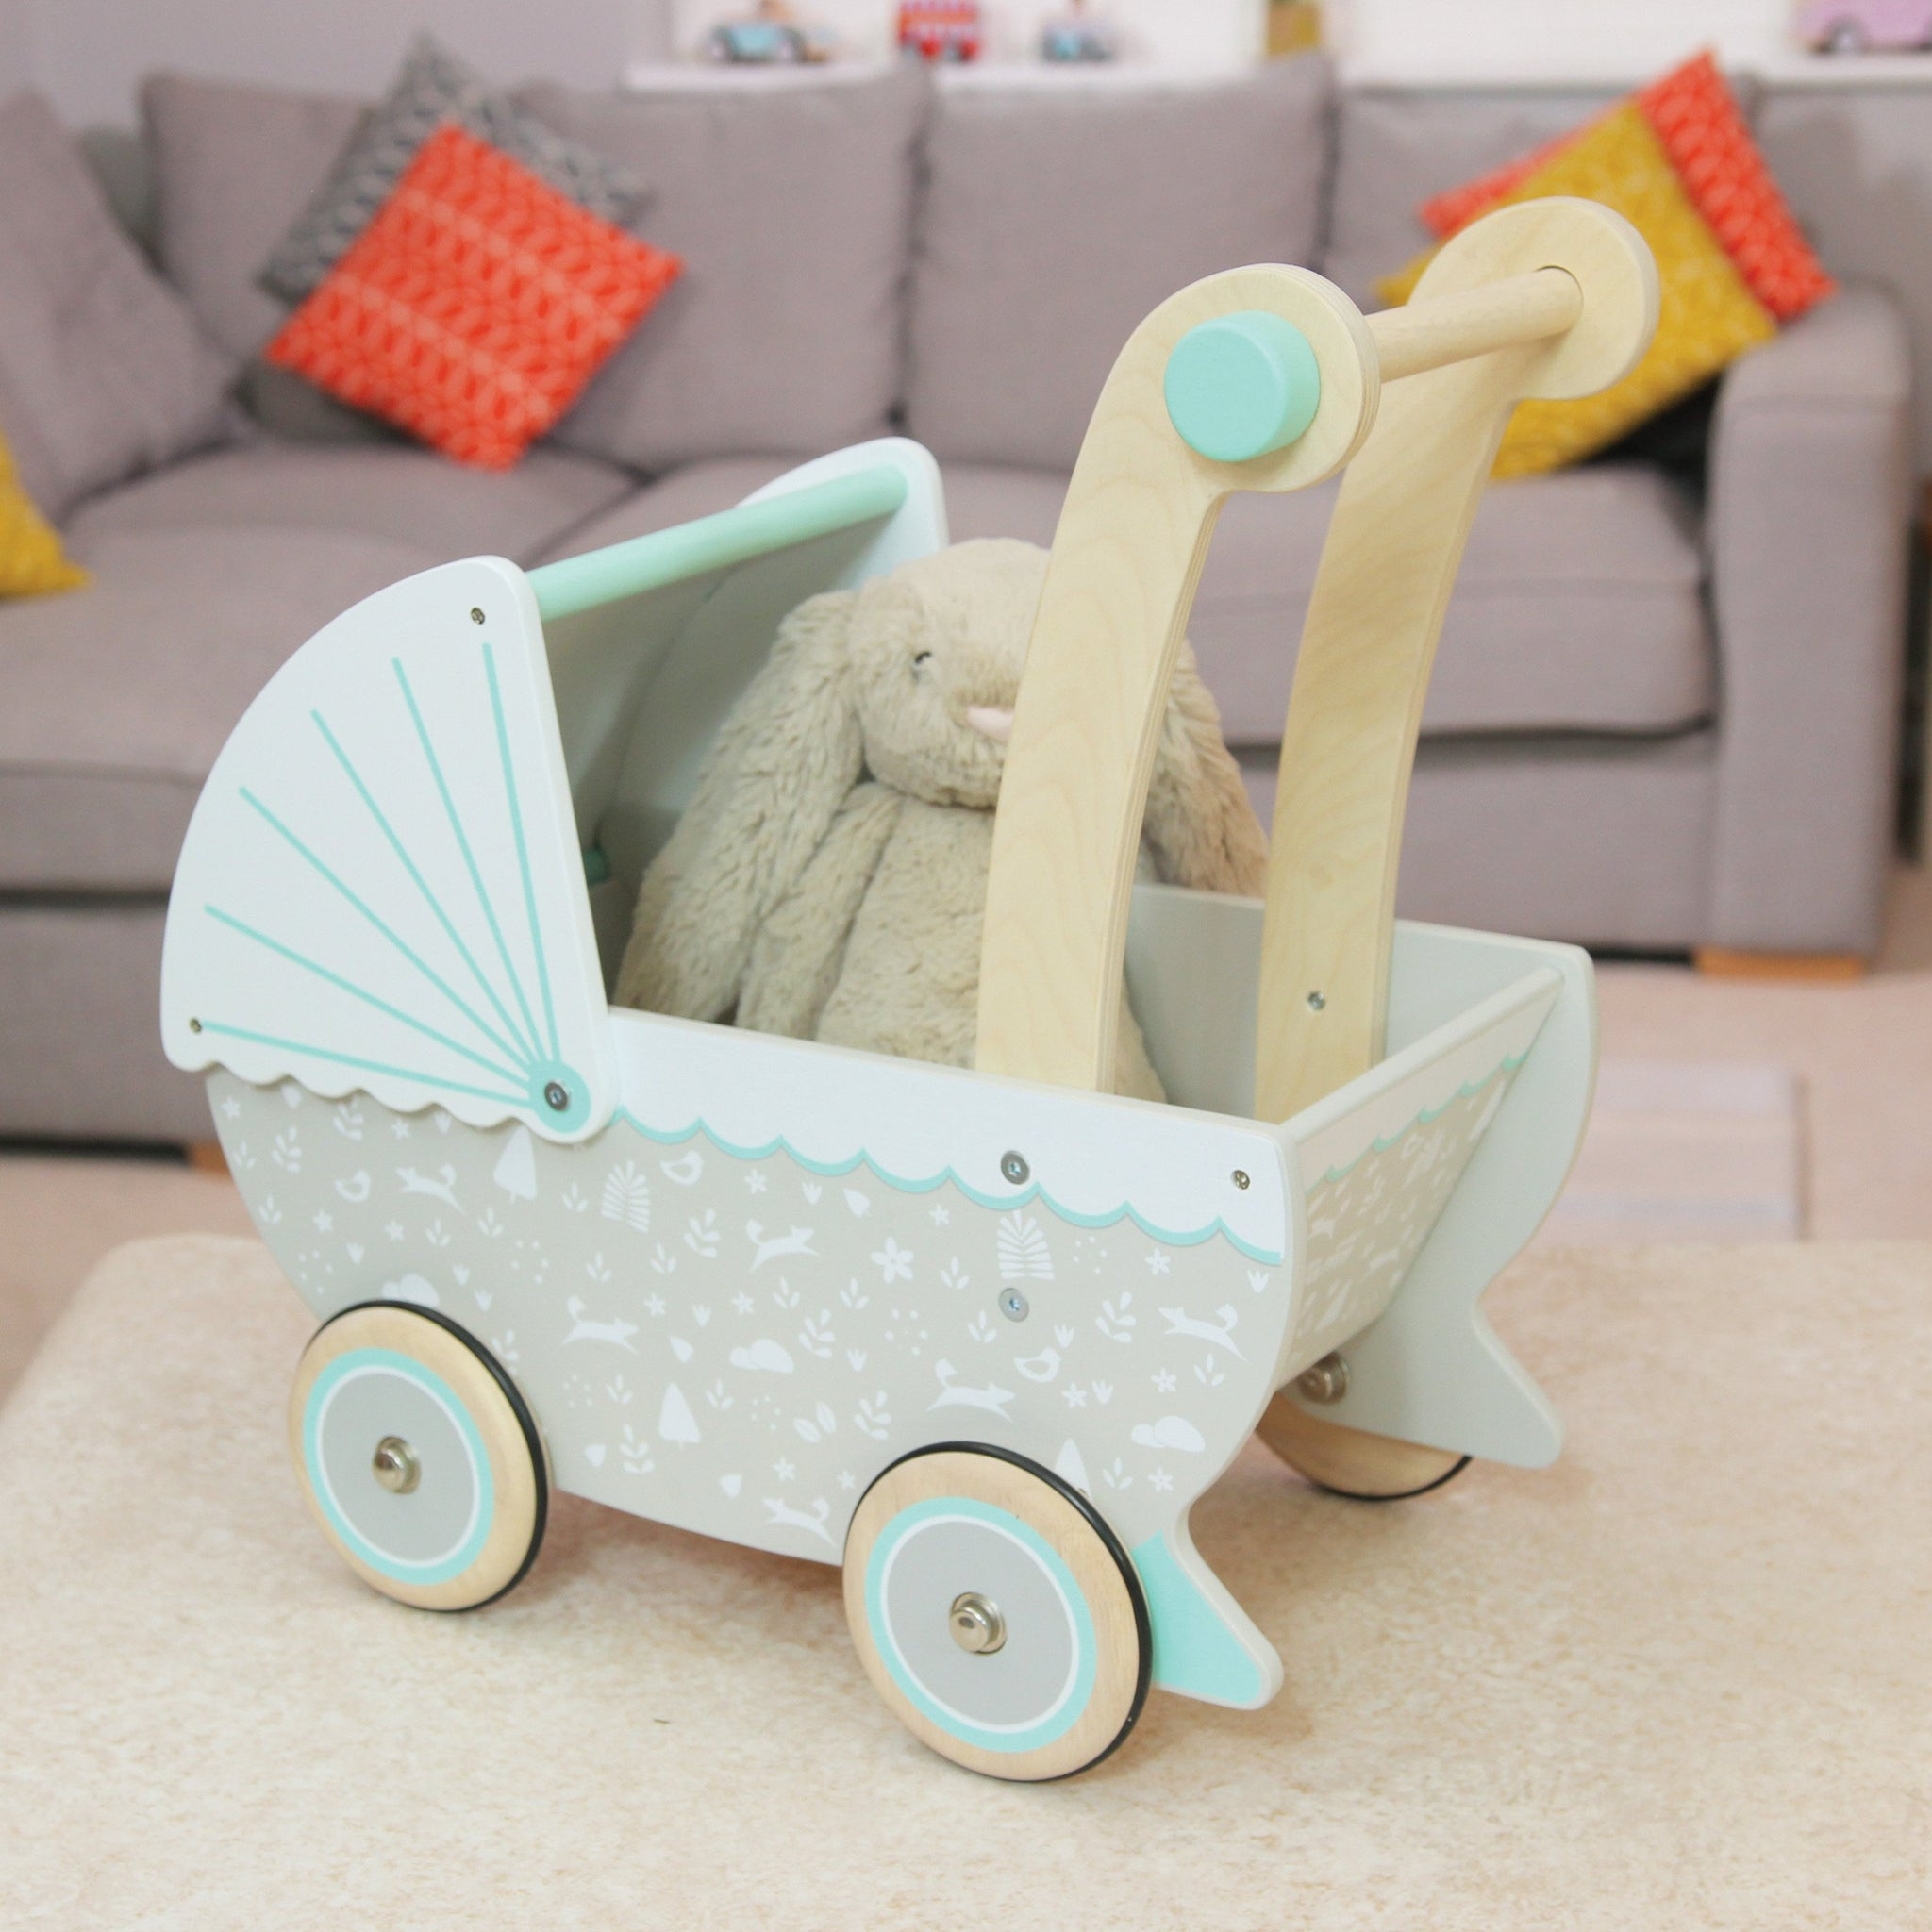 Indigo Jamm Petworth Dolls Pram Indigo Jamm Pretend Play at Little Earth Nest Eco Shop